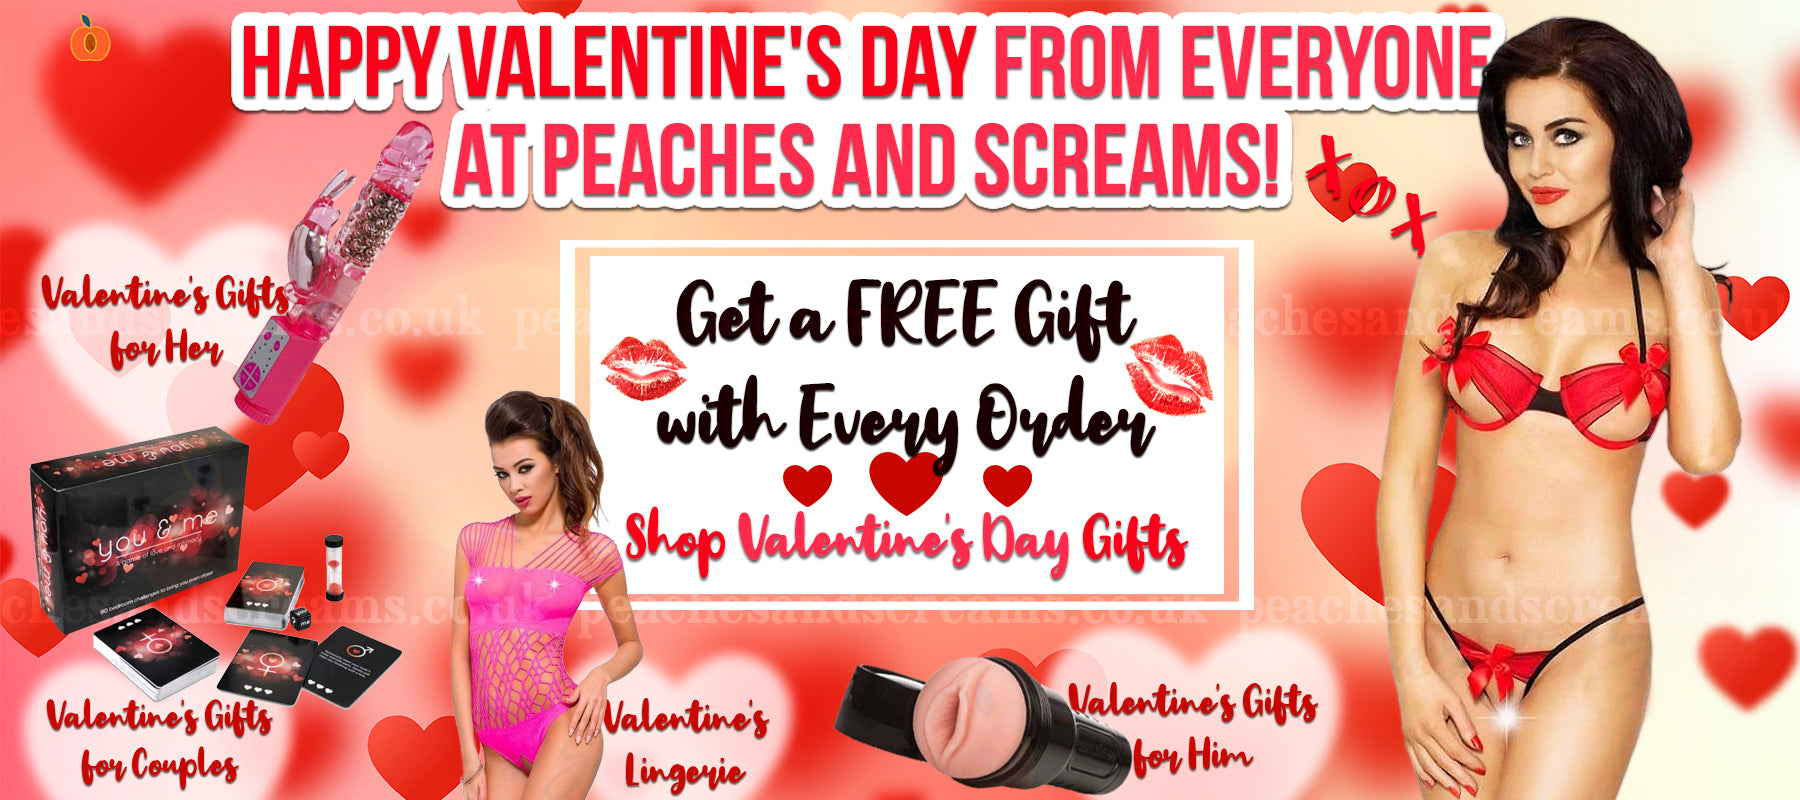 Valentine's Day Lingerie: Red & Pink Lingerie, Bras & Panties